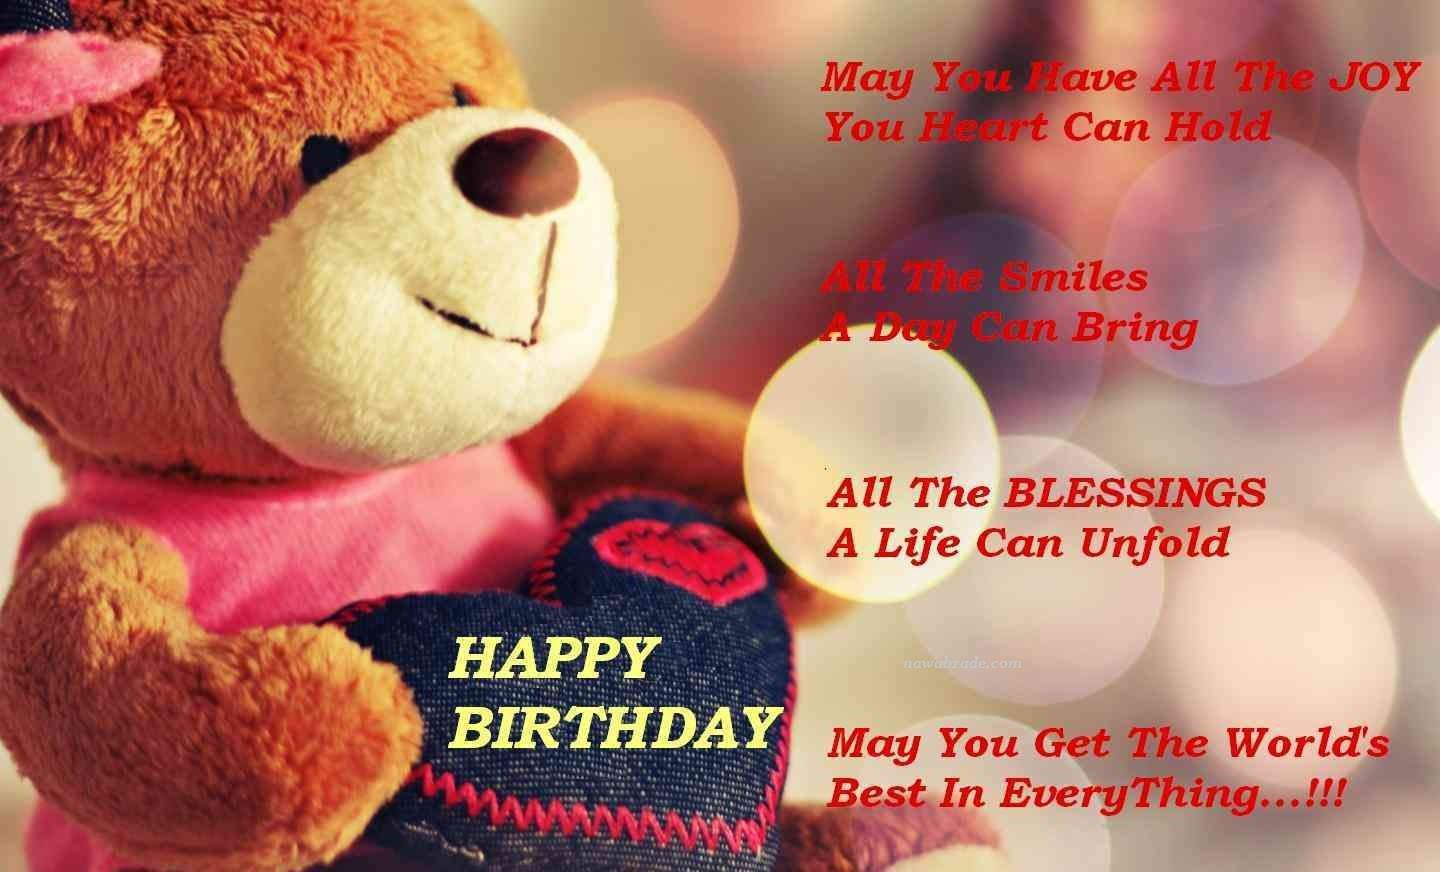 Top 10 birthday quotes wishes quotes - Top 10 Best Birthday Wishes For Husband With Images